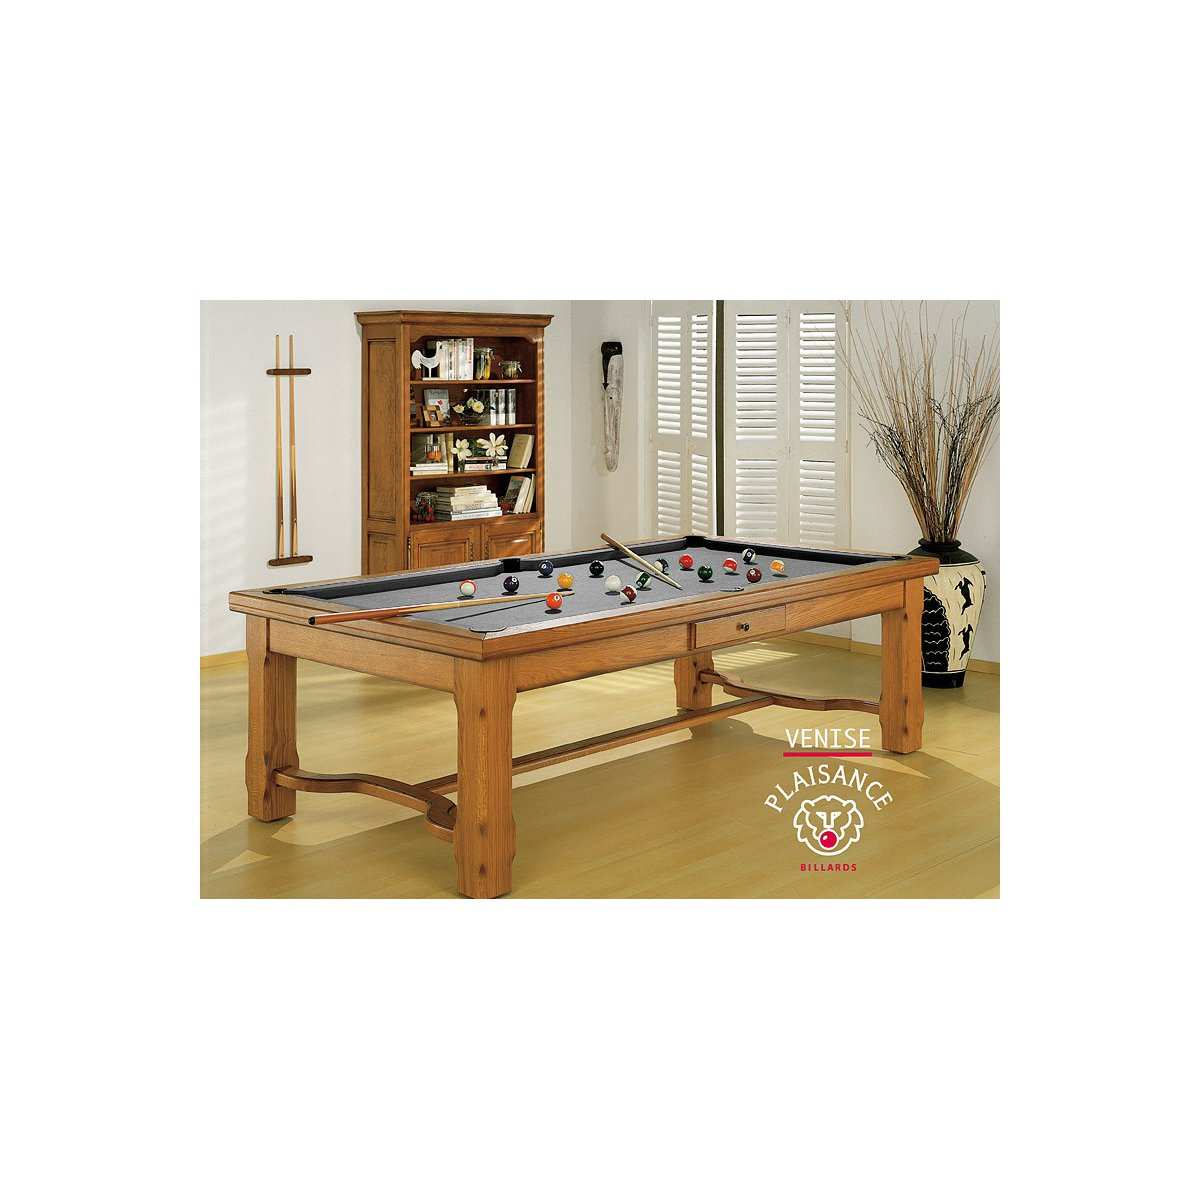 Billard table a manger venise prestige - Table de billard convertible table a manger ...